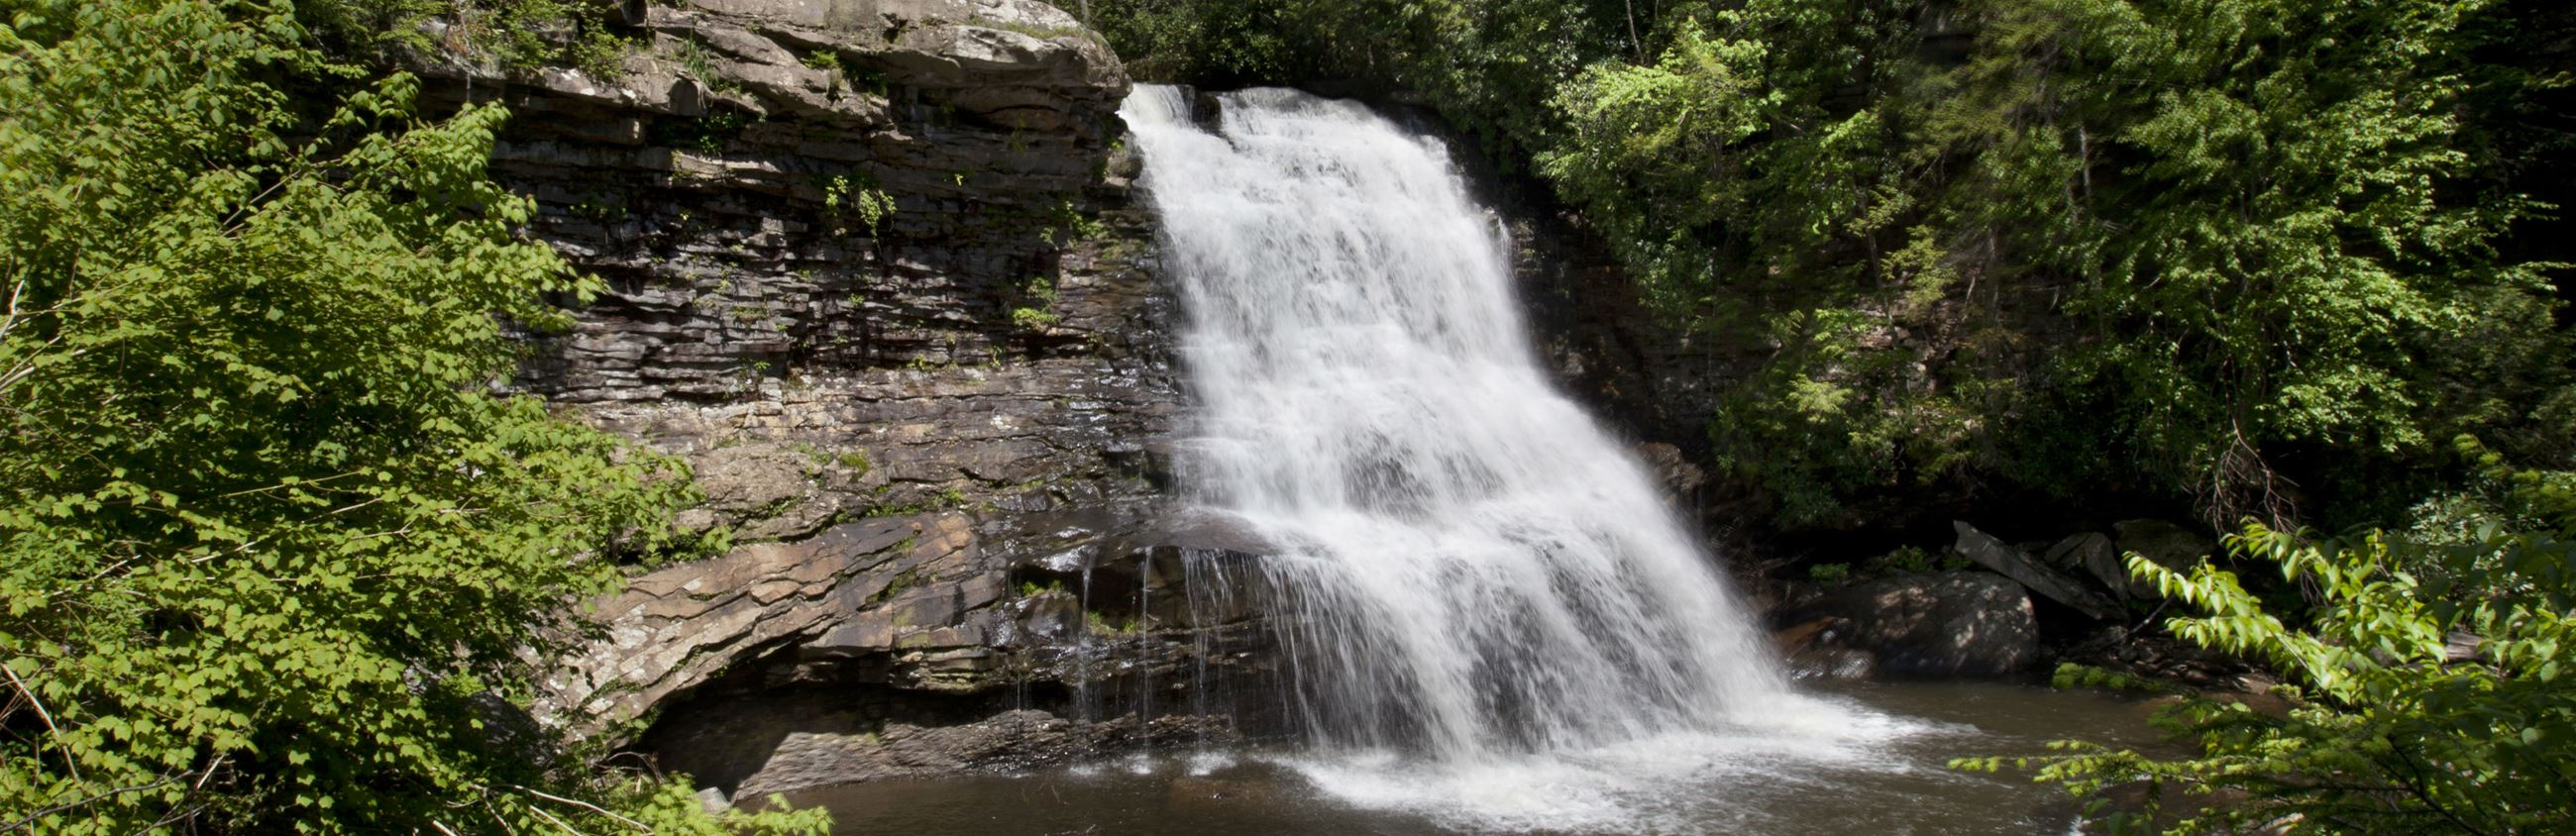 Swallow Falls State Park, Garrett County, encompasses the Youghiogheny River and is home of Muddy Creek Falls. This spectacular waterfall is 53 feet high and it is the highest in Maryland.